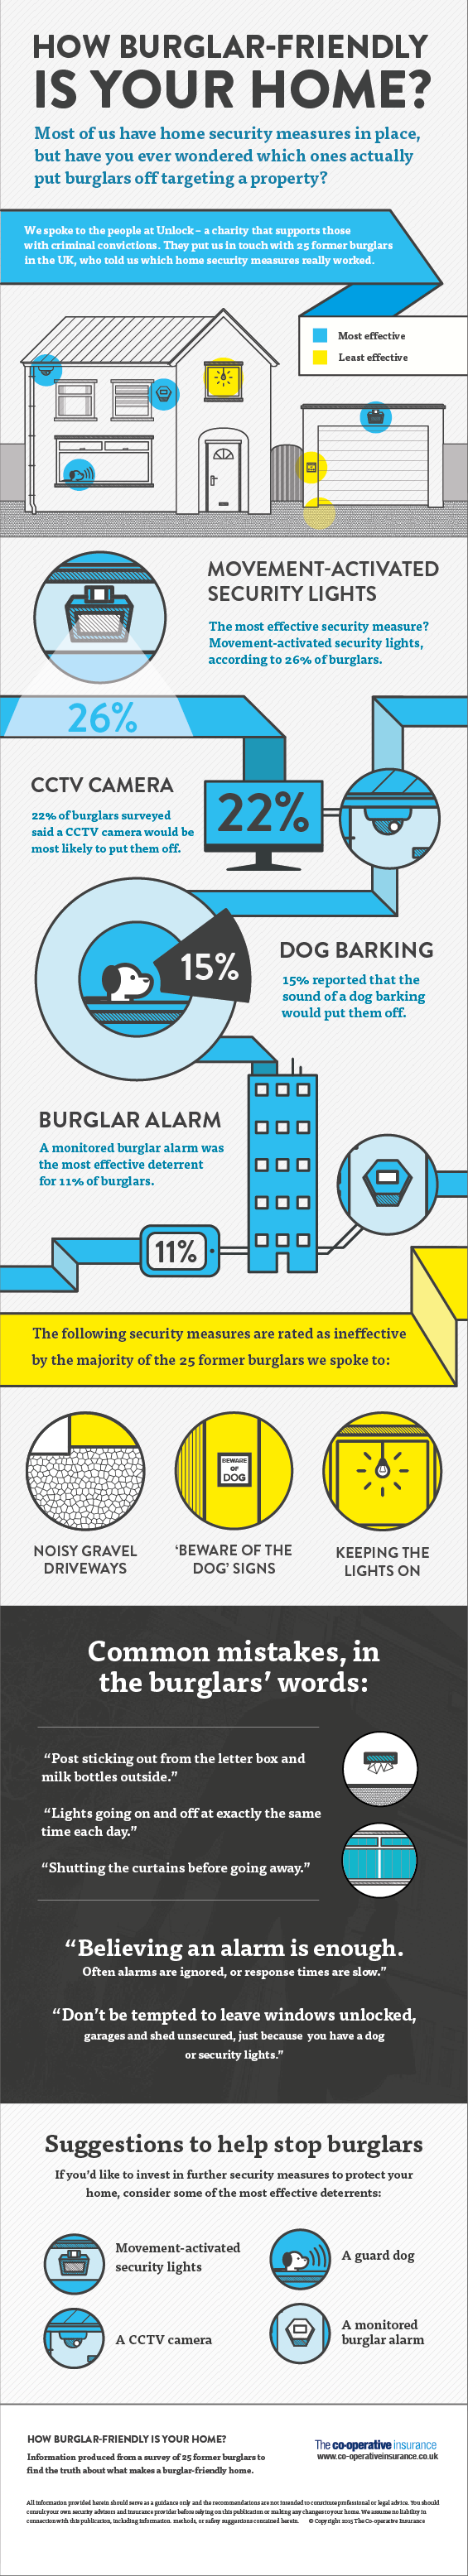 How Burglar Friendly is Your Home